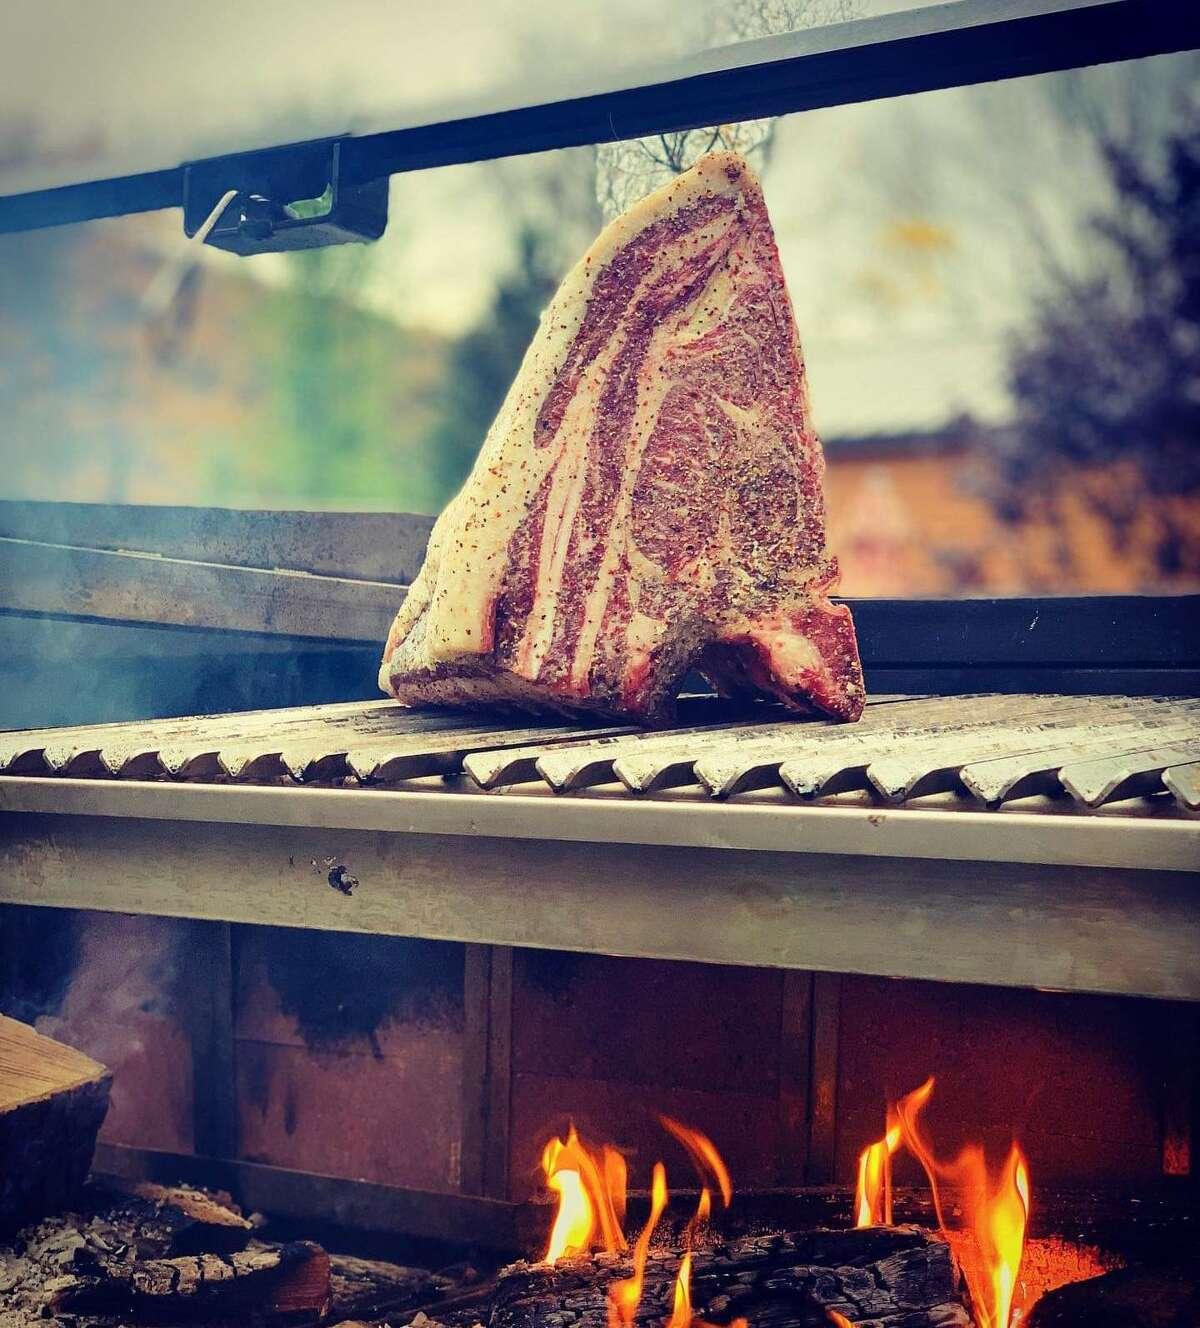 Cold Spring's Marbled Meat Shop will have 45-day dry aged rib eyes in time for Labor Day grilling.